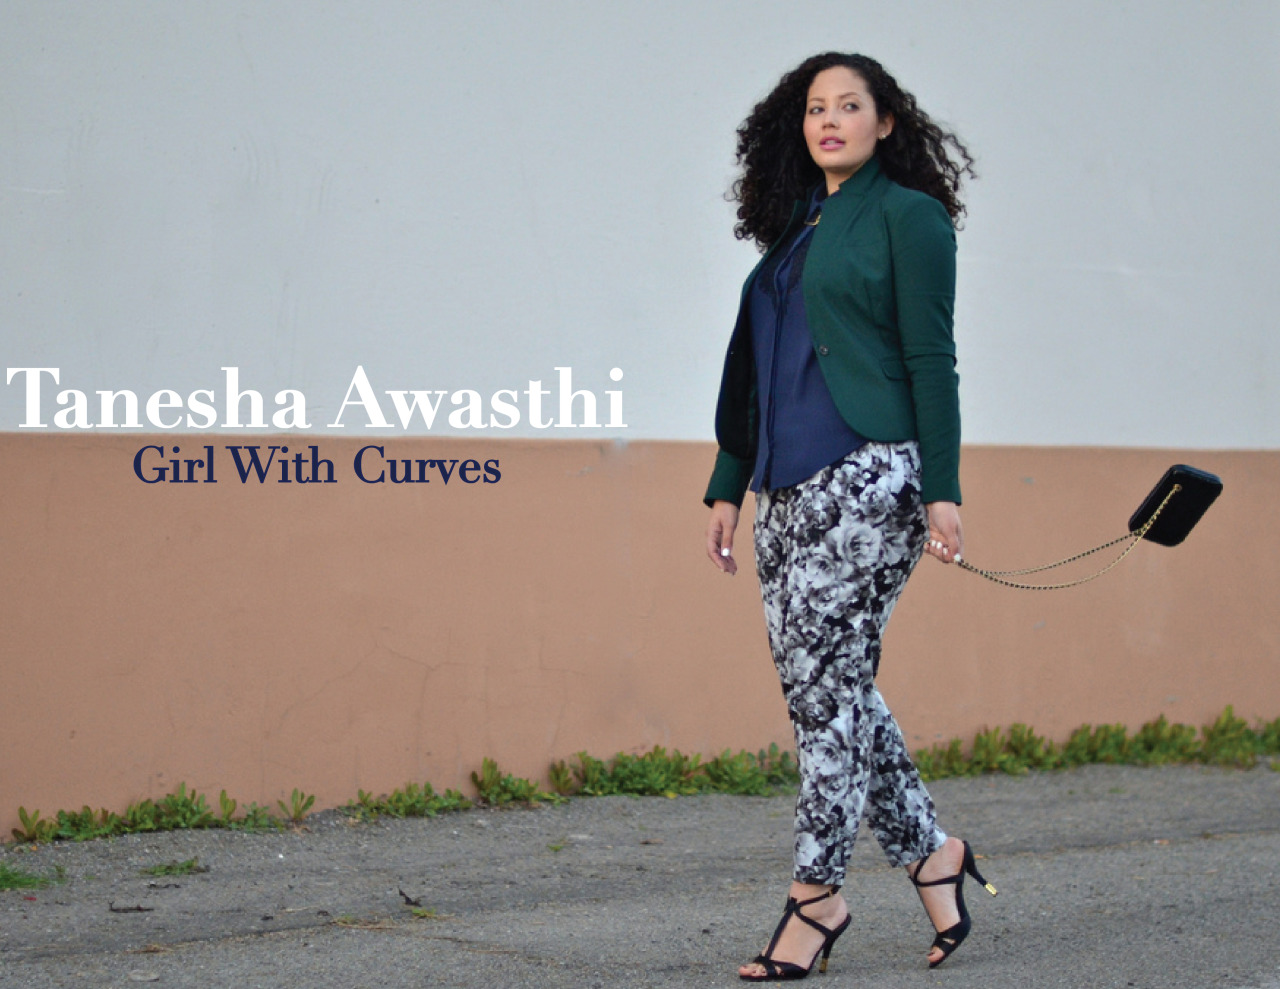 A Collected Interview: Tanesha Awasthi of Girl With Curves  What inspired you to become a blogger?  I started the blog as a creative outlet outside my fulltime job in the tech field, which was my hubby's idea. At the time, I didn't even know what a blog was, and I had no idea what I'd write about.  How does your heritage inspire your style?  I think my heritage is expressed mostly in my accessories.  I love unique, ethnic accessories from far away lands, and I'm mixed with 8 things equally.   What bloggers did you look up to before creating your own blog?  I hadn't known of any blogs when I started my own.  Over time though, I found The Glamourai, 9to5chic, Karla's Closet, Gary Pepper, and they quickly became my favorites.  I think the beauty of blogging is there's no 'right way' or no 'better layout.'  Blogging allows individuals to be individuals, and that's a really beautiful thing.   How does it feel to have a following of people who is inspired by you?  It's the most amazing feeling in the world to be able to help girls and women feel good about themselves, while having fun with fashion and spreading a positive message.  What do you think you'll dress like in ten years?  In ten years I hope to be wearing my own clothing line! (Fingers-crossed).  What season do you feel like your style is at its highest level?  Definitely Fall/Winter.  I love layering, wearing boots, sweaters, coats, and scarves… Colder climates allow me to get much more creative with fashion.  Who are some of your favorite designers?  Oscar de la Renta is amazing, and Valentino is timeless and classic with a bit of edge.  Michael Kors is also pretty fab.  Do you have any tips for females looking to become fashion bloggers?  The best advice I can give is to be yourself, develop your own unique voice, and above all else: blog about what you're passionate about.  How do you feel about the state of Plus Size bloggers?  I think the Plus blogging genre is growing and growing, which is great!  We all have different styles and different qualities to offer, and I love seeing such diversity in such a small community.  Who's your style icon?  I really love Olivia Palermo, Rachel Zoe and Kourtney Kardashian's style, as well as Audrey Hepburn's and the young Elizabeth Taylor's.  What would you say has been your biggest achievement as a blogger?  Being able to impact lives through showing that you can be stylish and have fun with fashion at any size.  What keeps you inspired?   My readers!  Knowing that I'm helping at least one person in the world keeps me going.  Website | Twitter | Facebook |